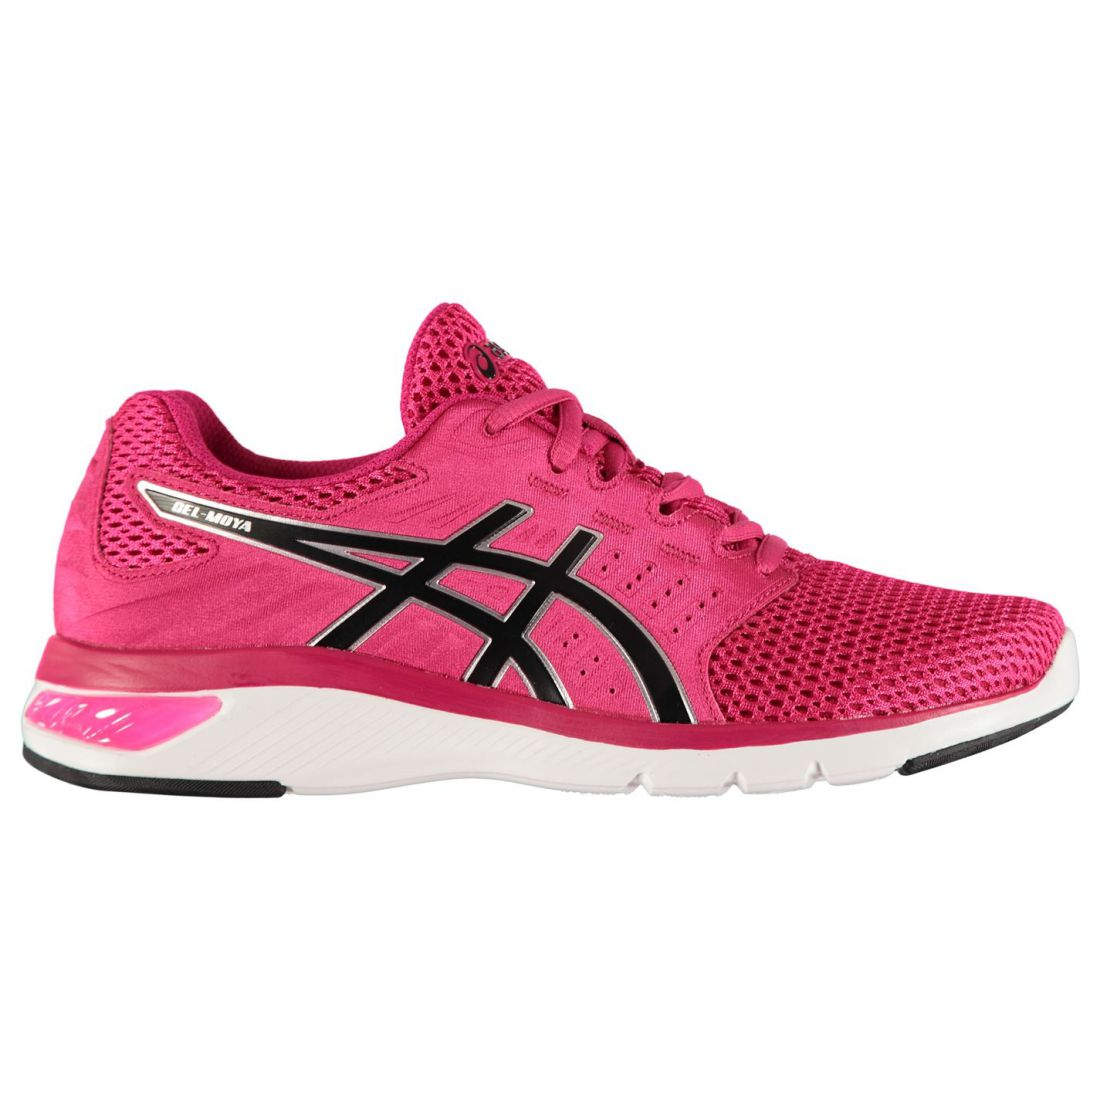 Asics Womens Gel Moya Running Shoes Road Lace Up Breathable Lightweight Mesh c8a0384998